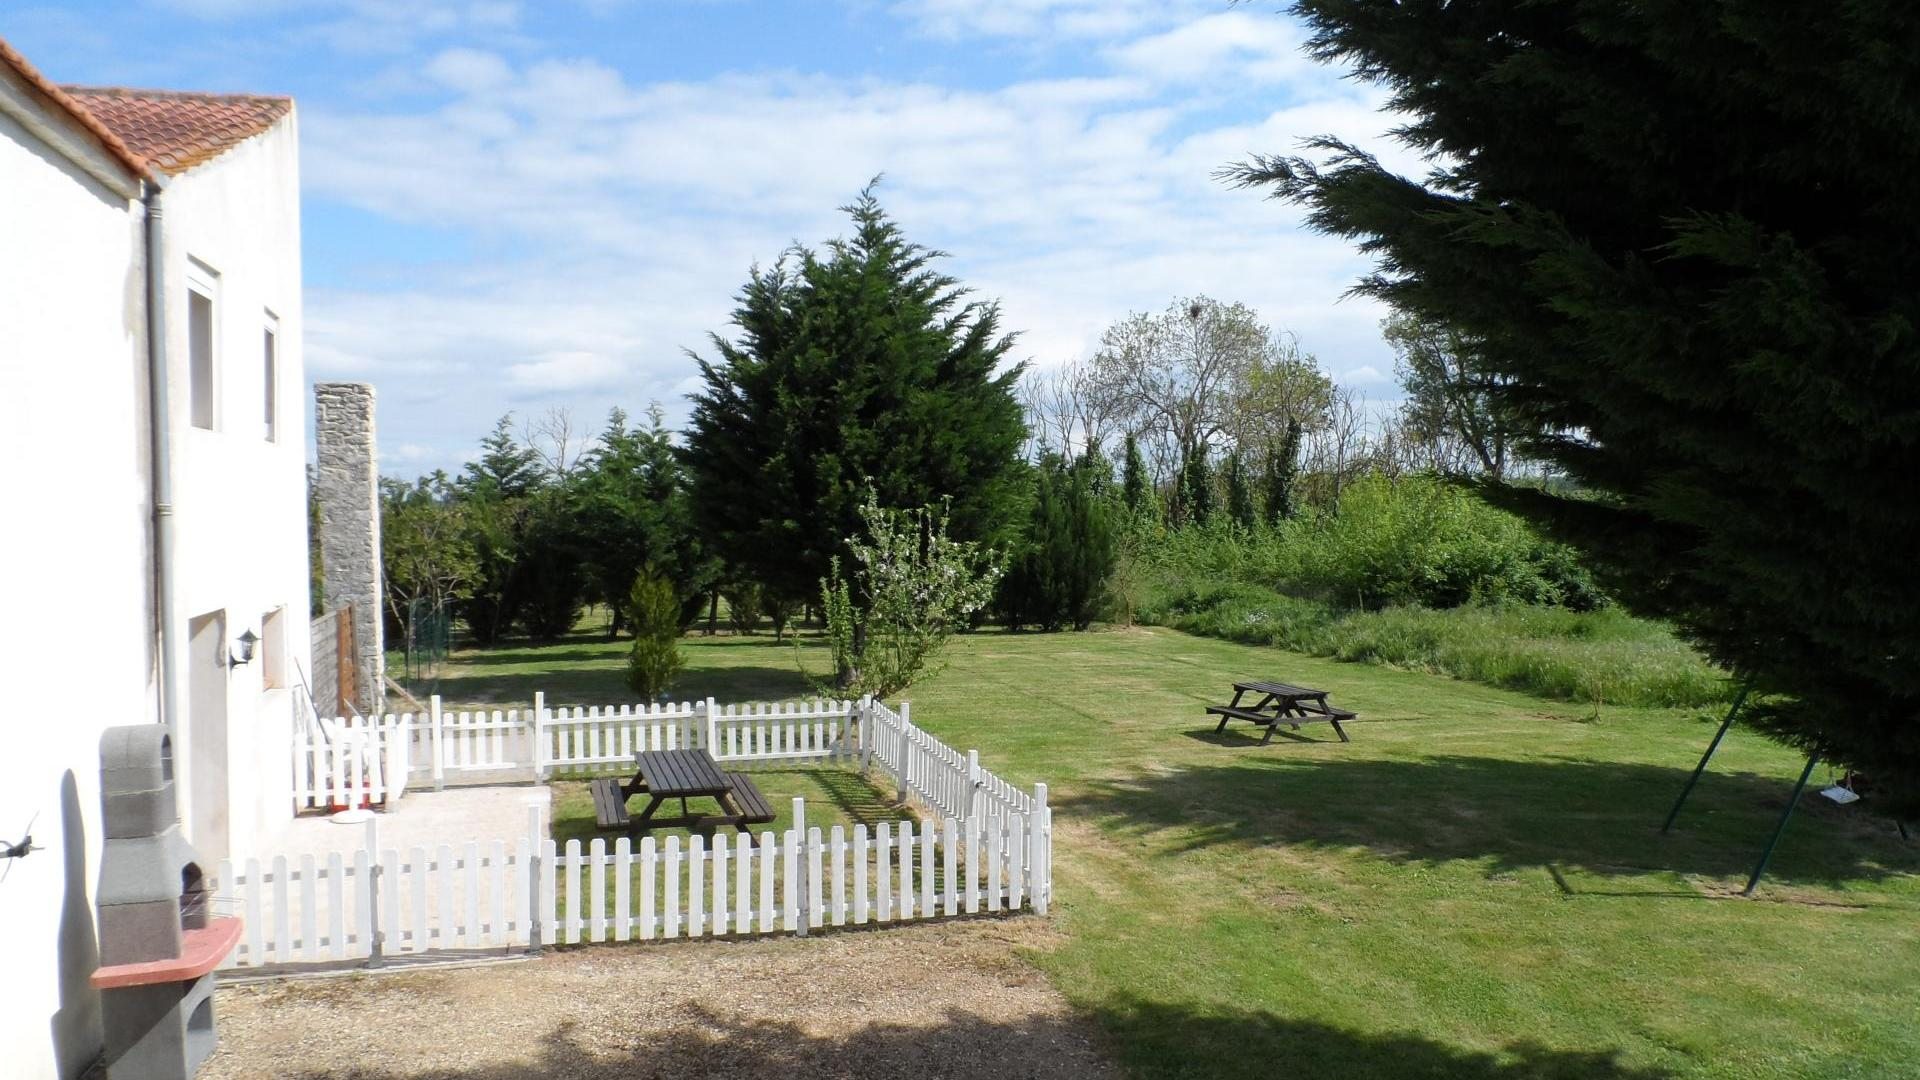 2 bedroom toddler-friendly holiday cottage near beaches, France - PFDU